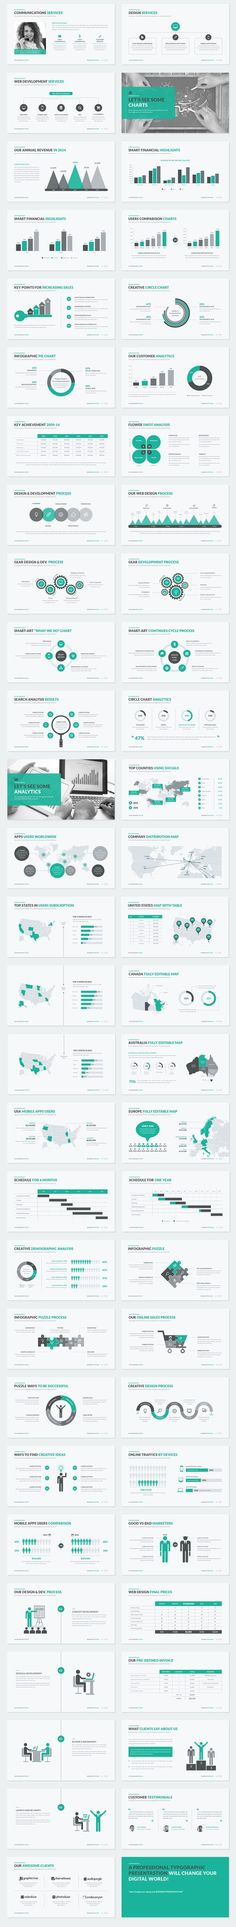 Business Proposal PowerPoint Template on Behance: